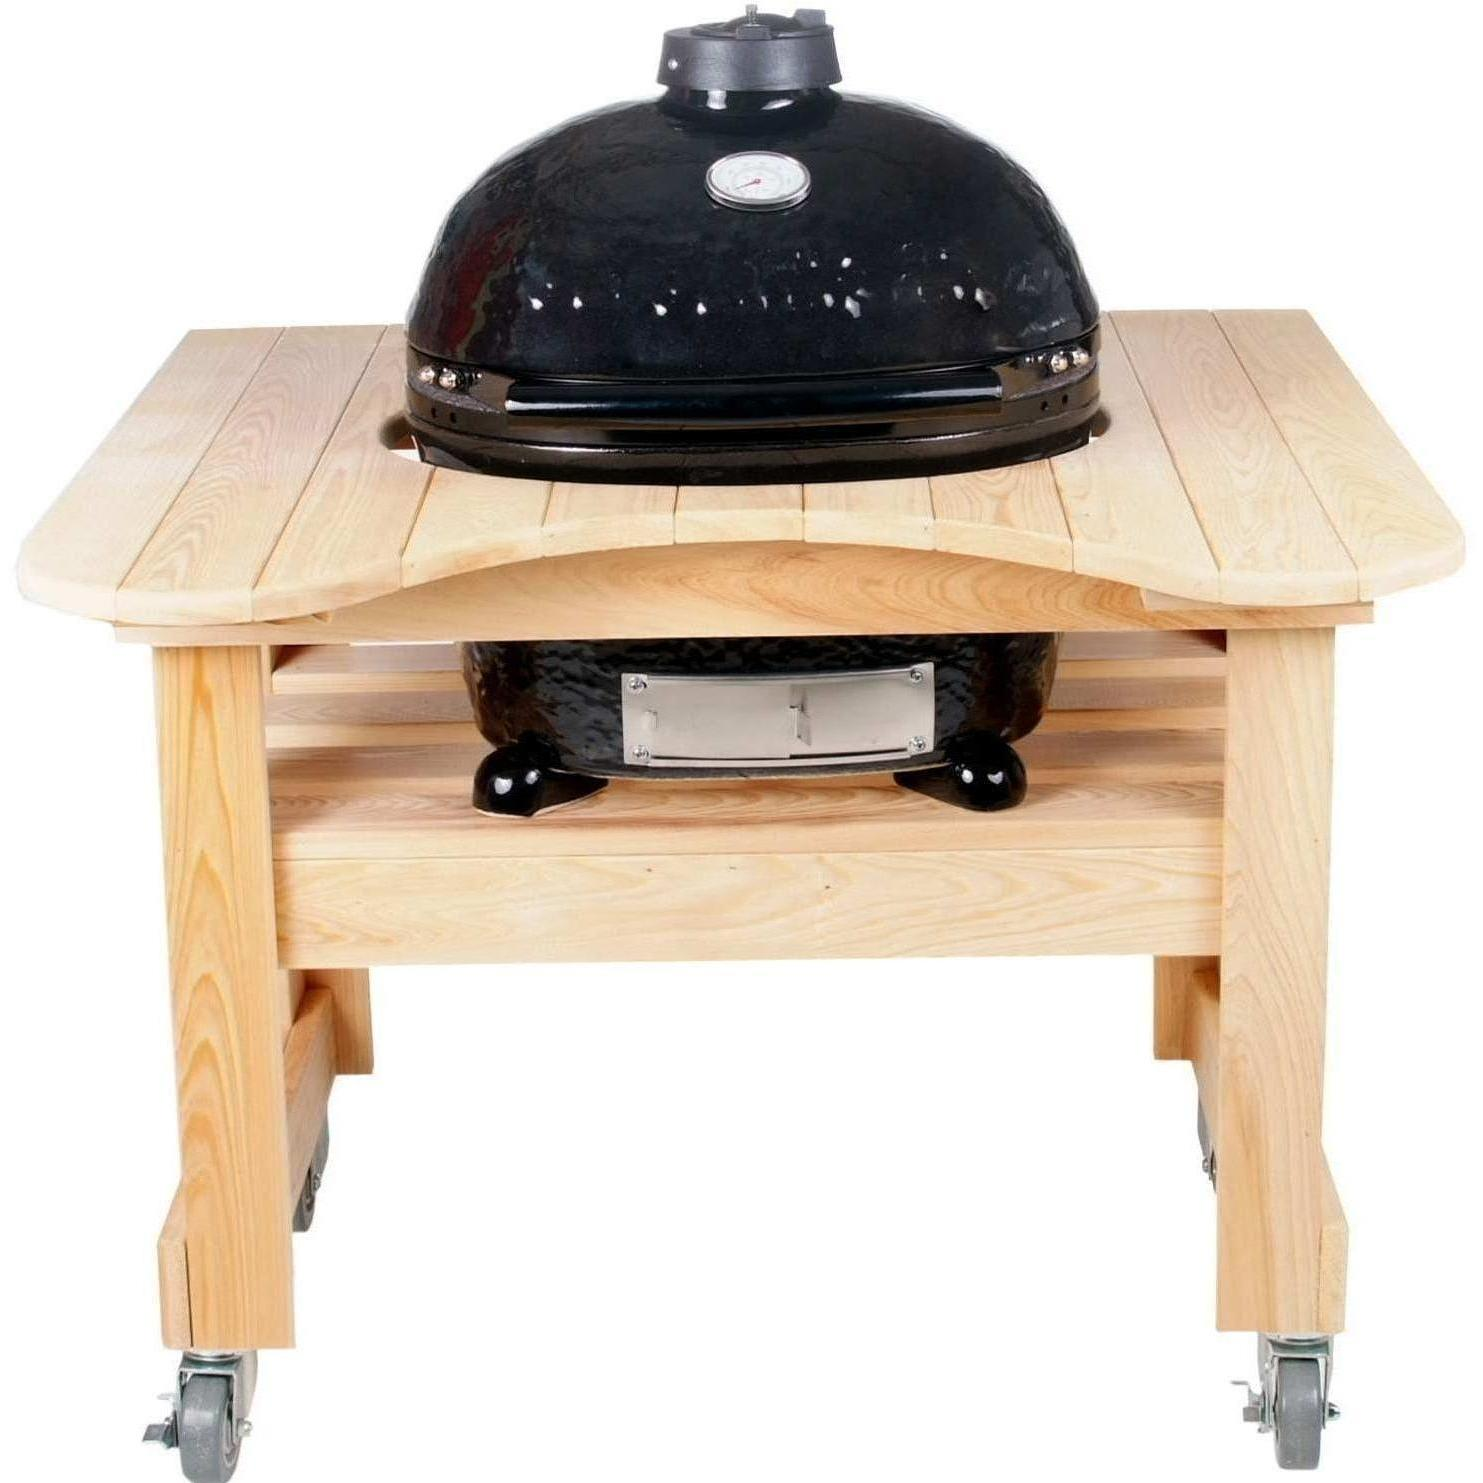 Primo Ceramic Charcoal Smoker Grill On Curved Cypress Table - Oval Junior, Discount ID 774 605